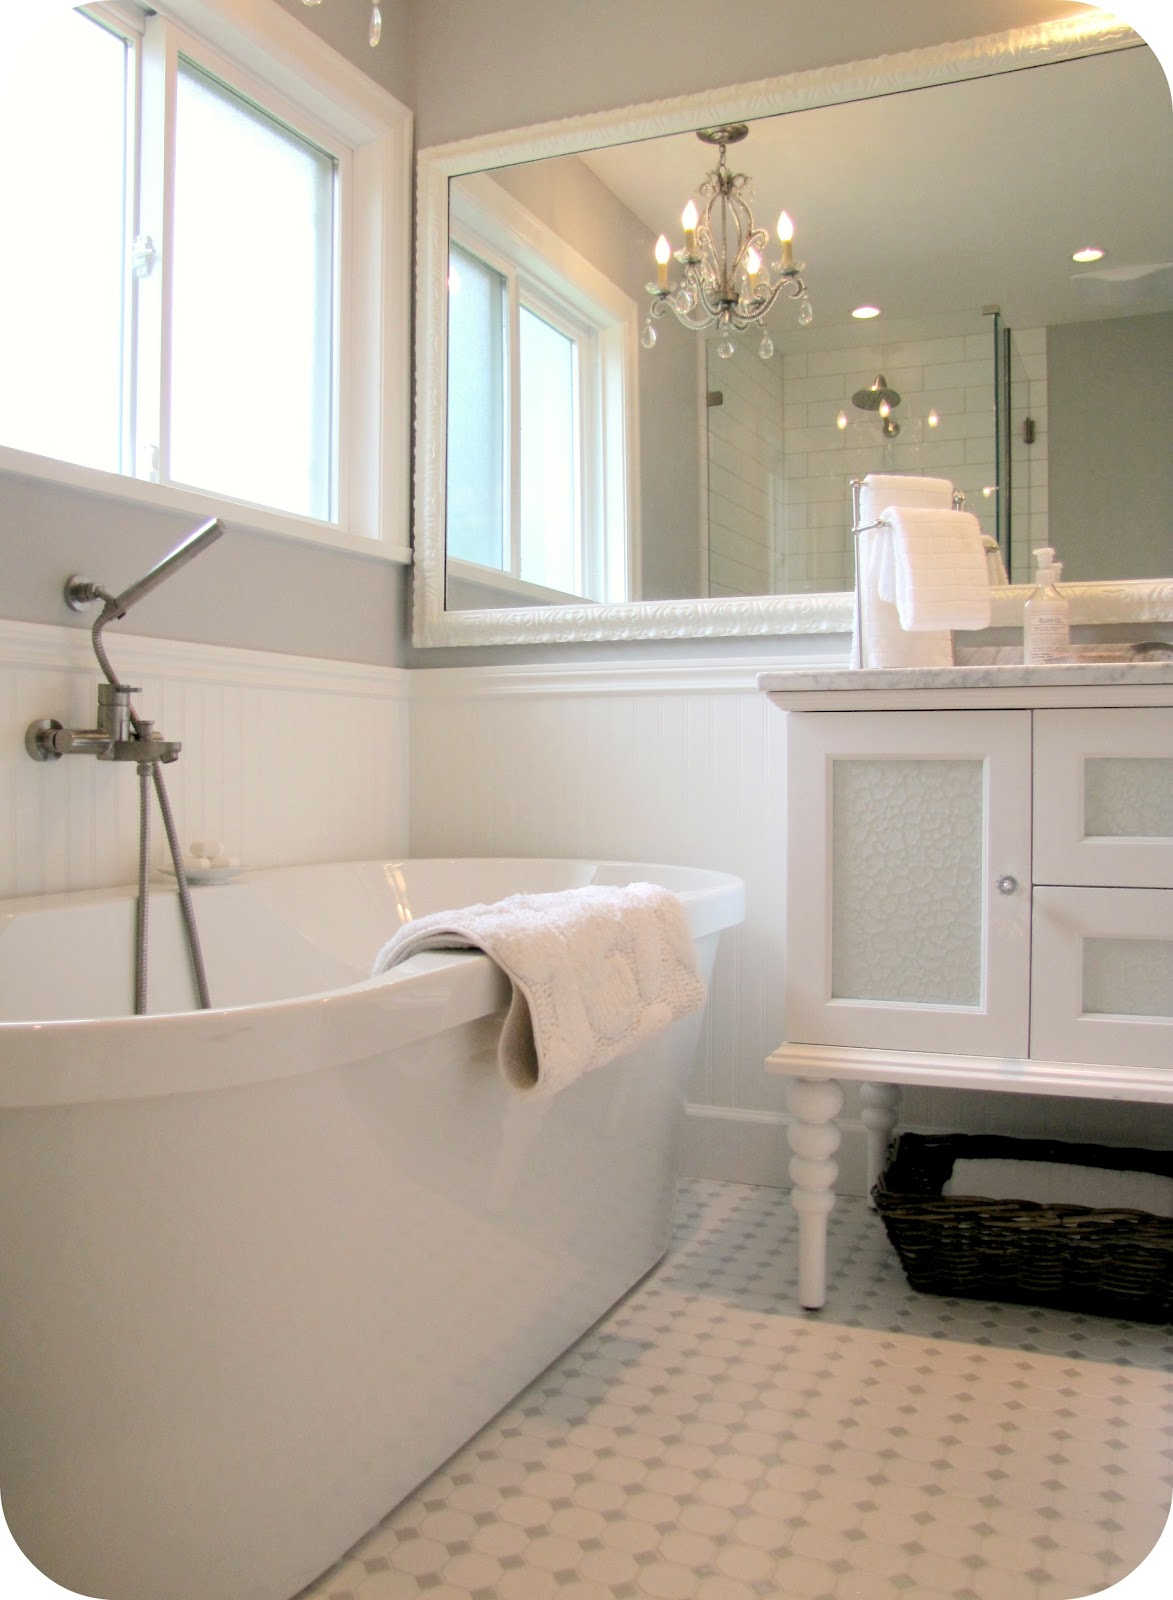 My house of giggles white and grey bathroom renovation - White bathroom ideas photo gallery ...